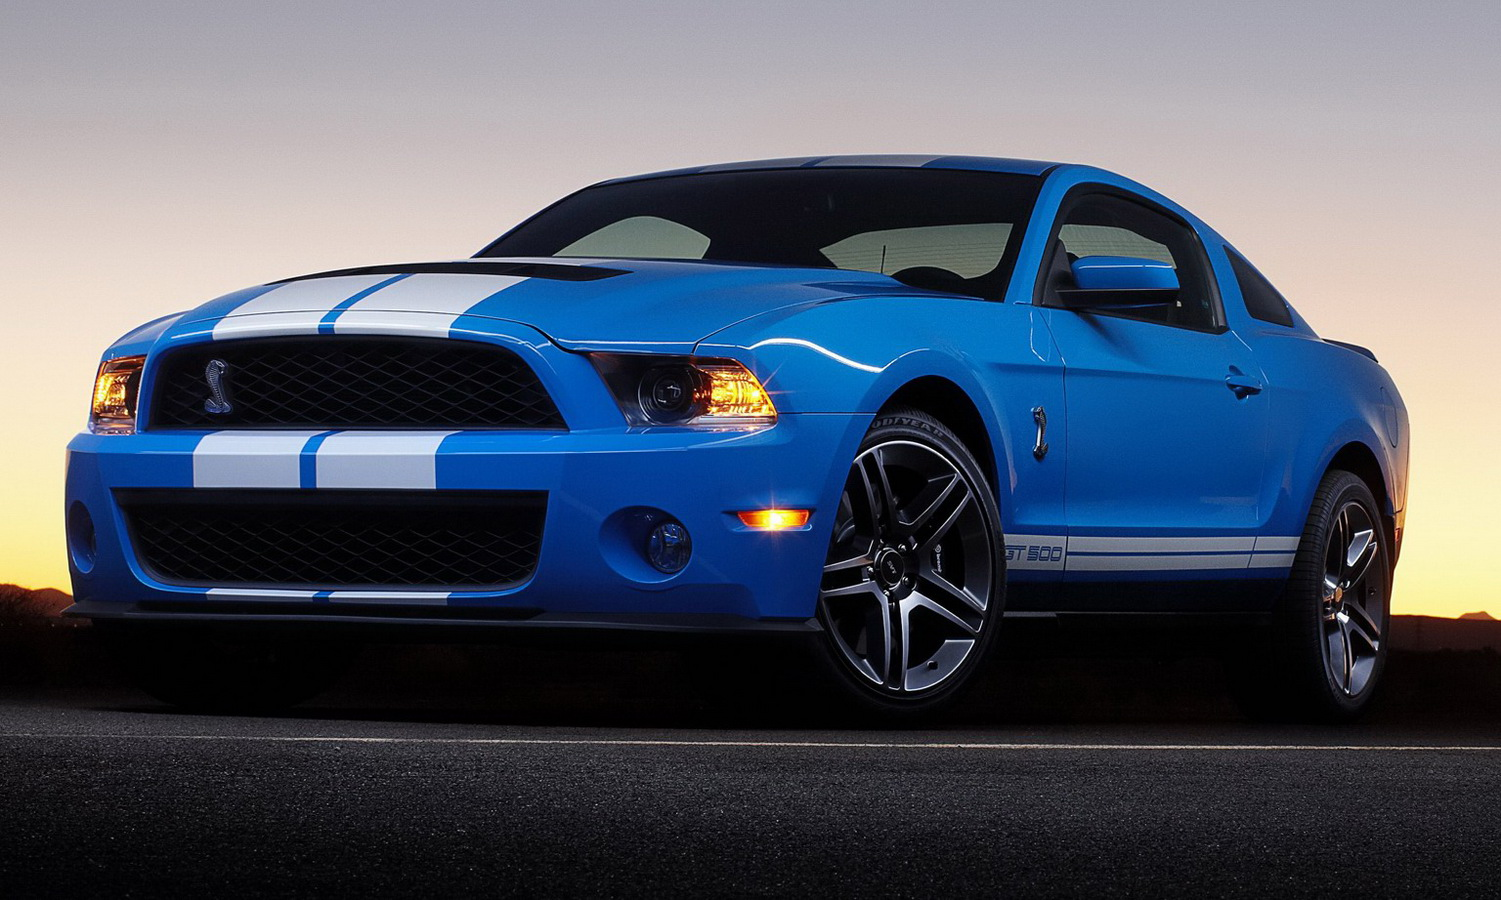 2009 Ford Shelby Gt500 #3